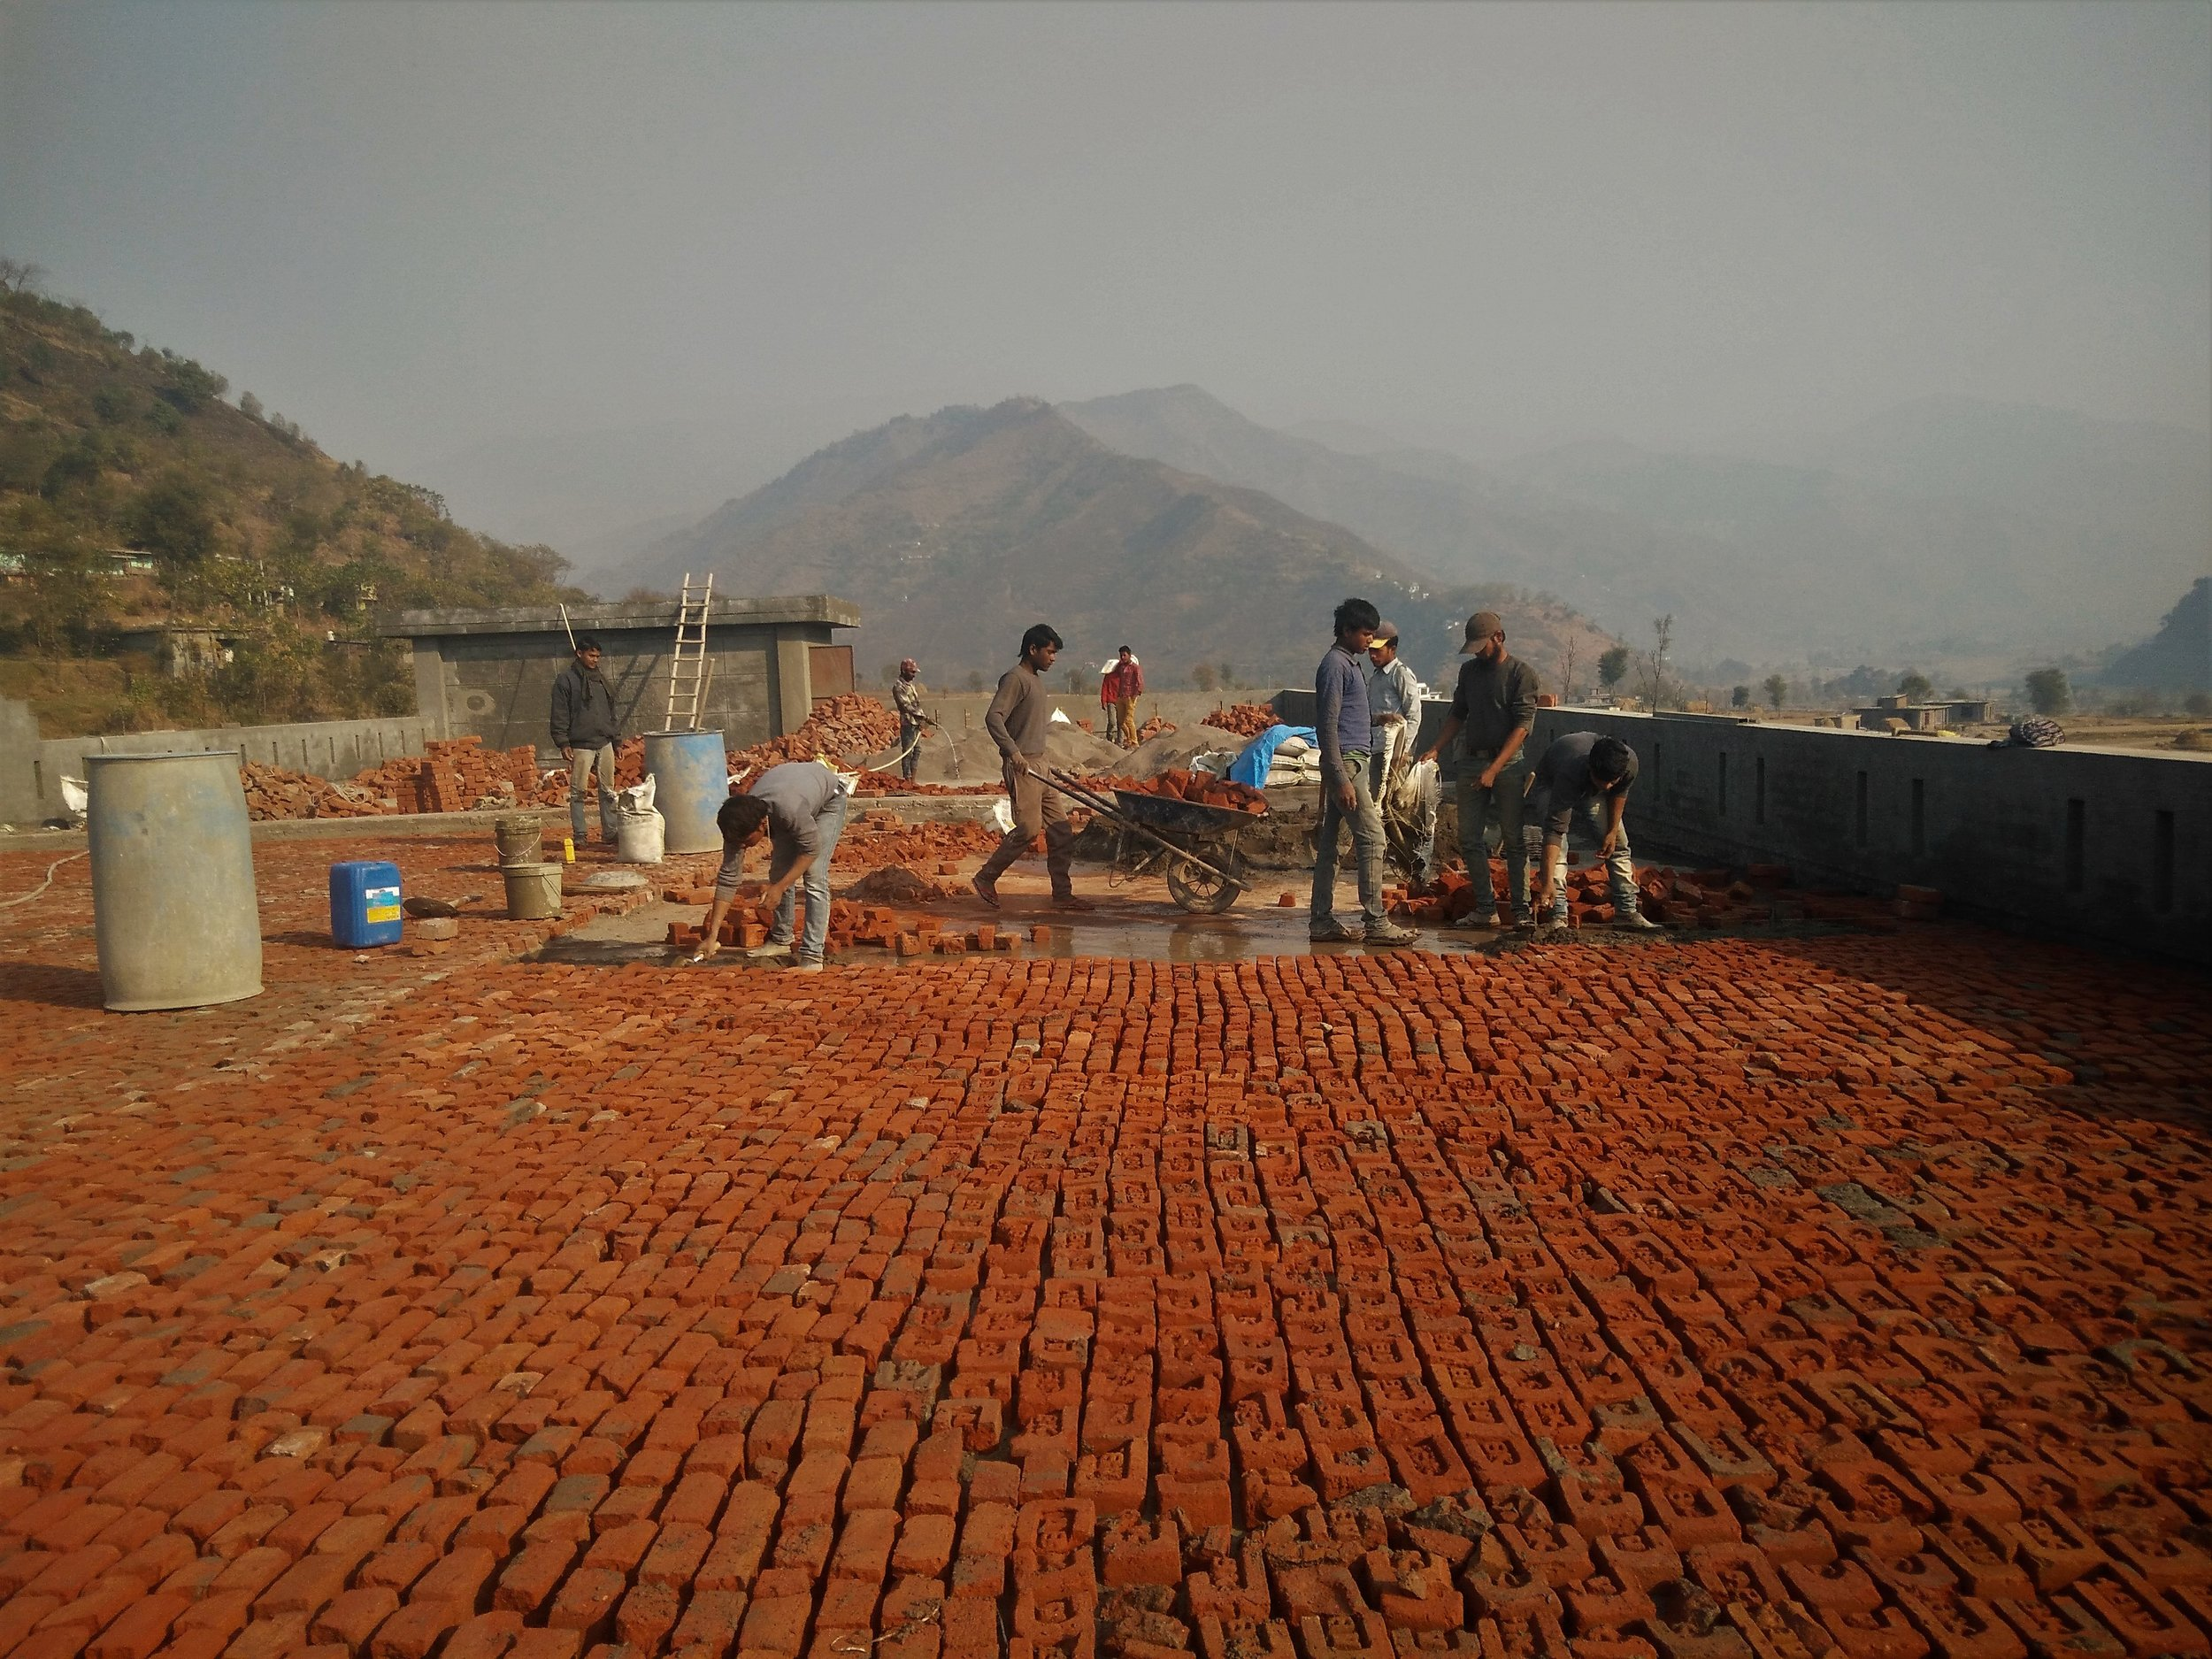 Migrant workers constrcut a water resistant roof for the school building in Poonchh. Credit: Ankur Jayaswal